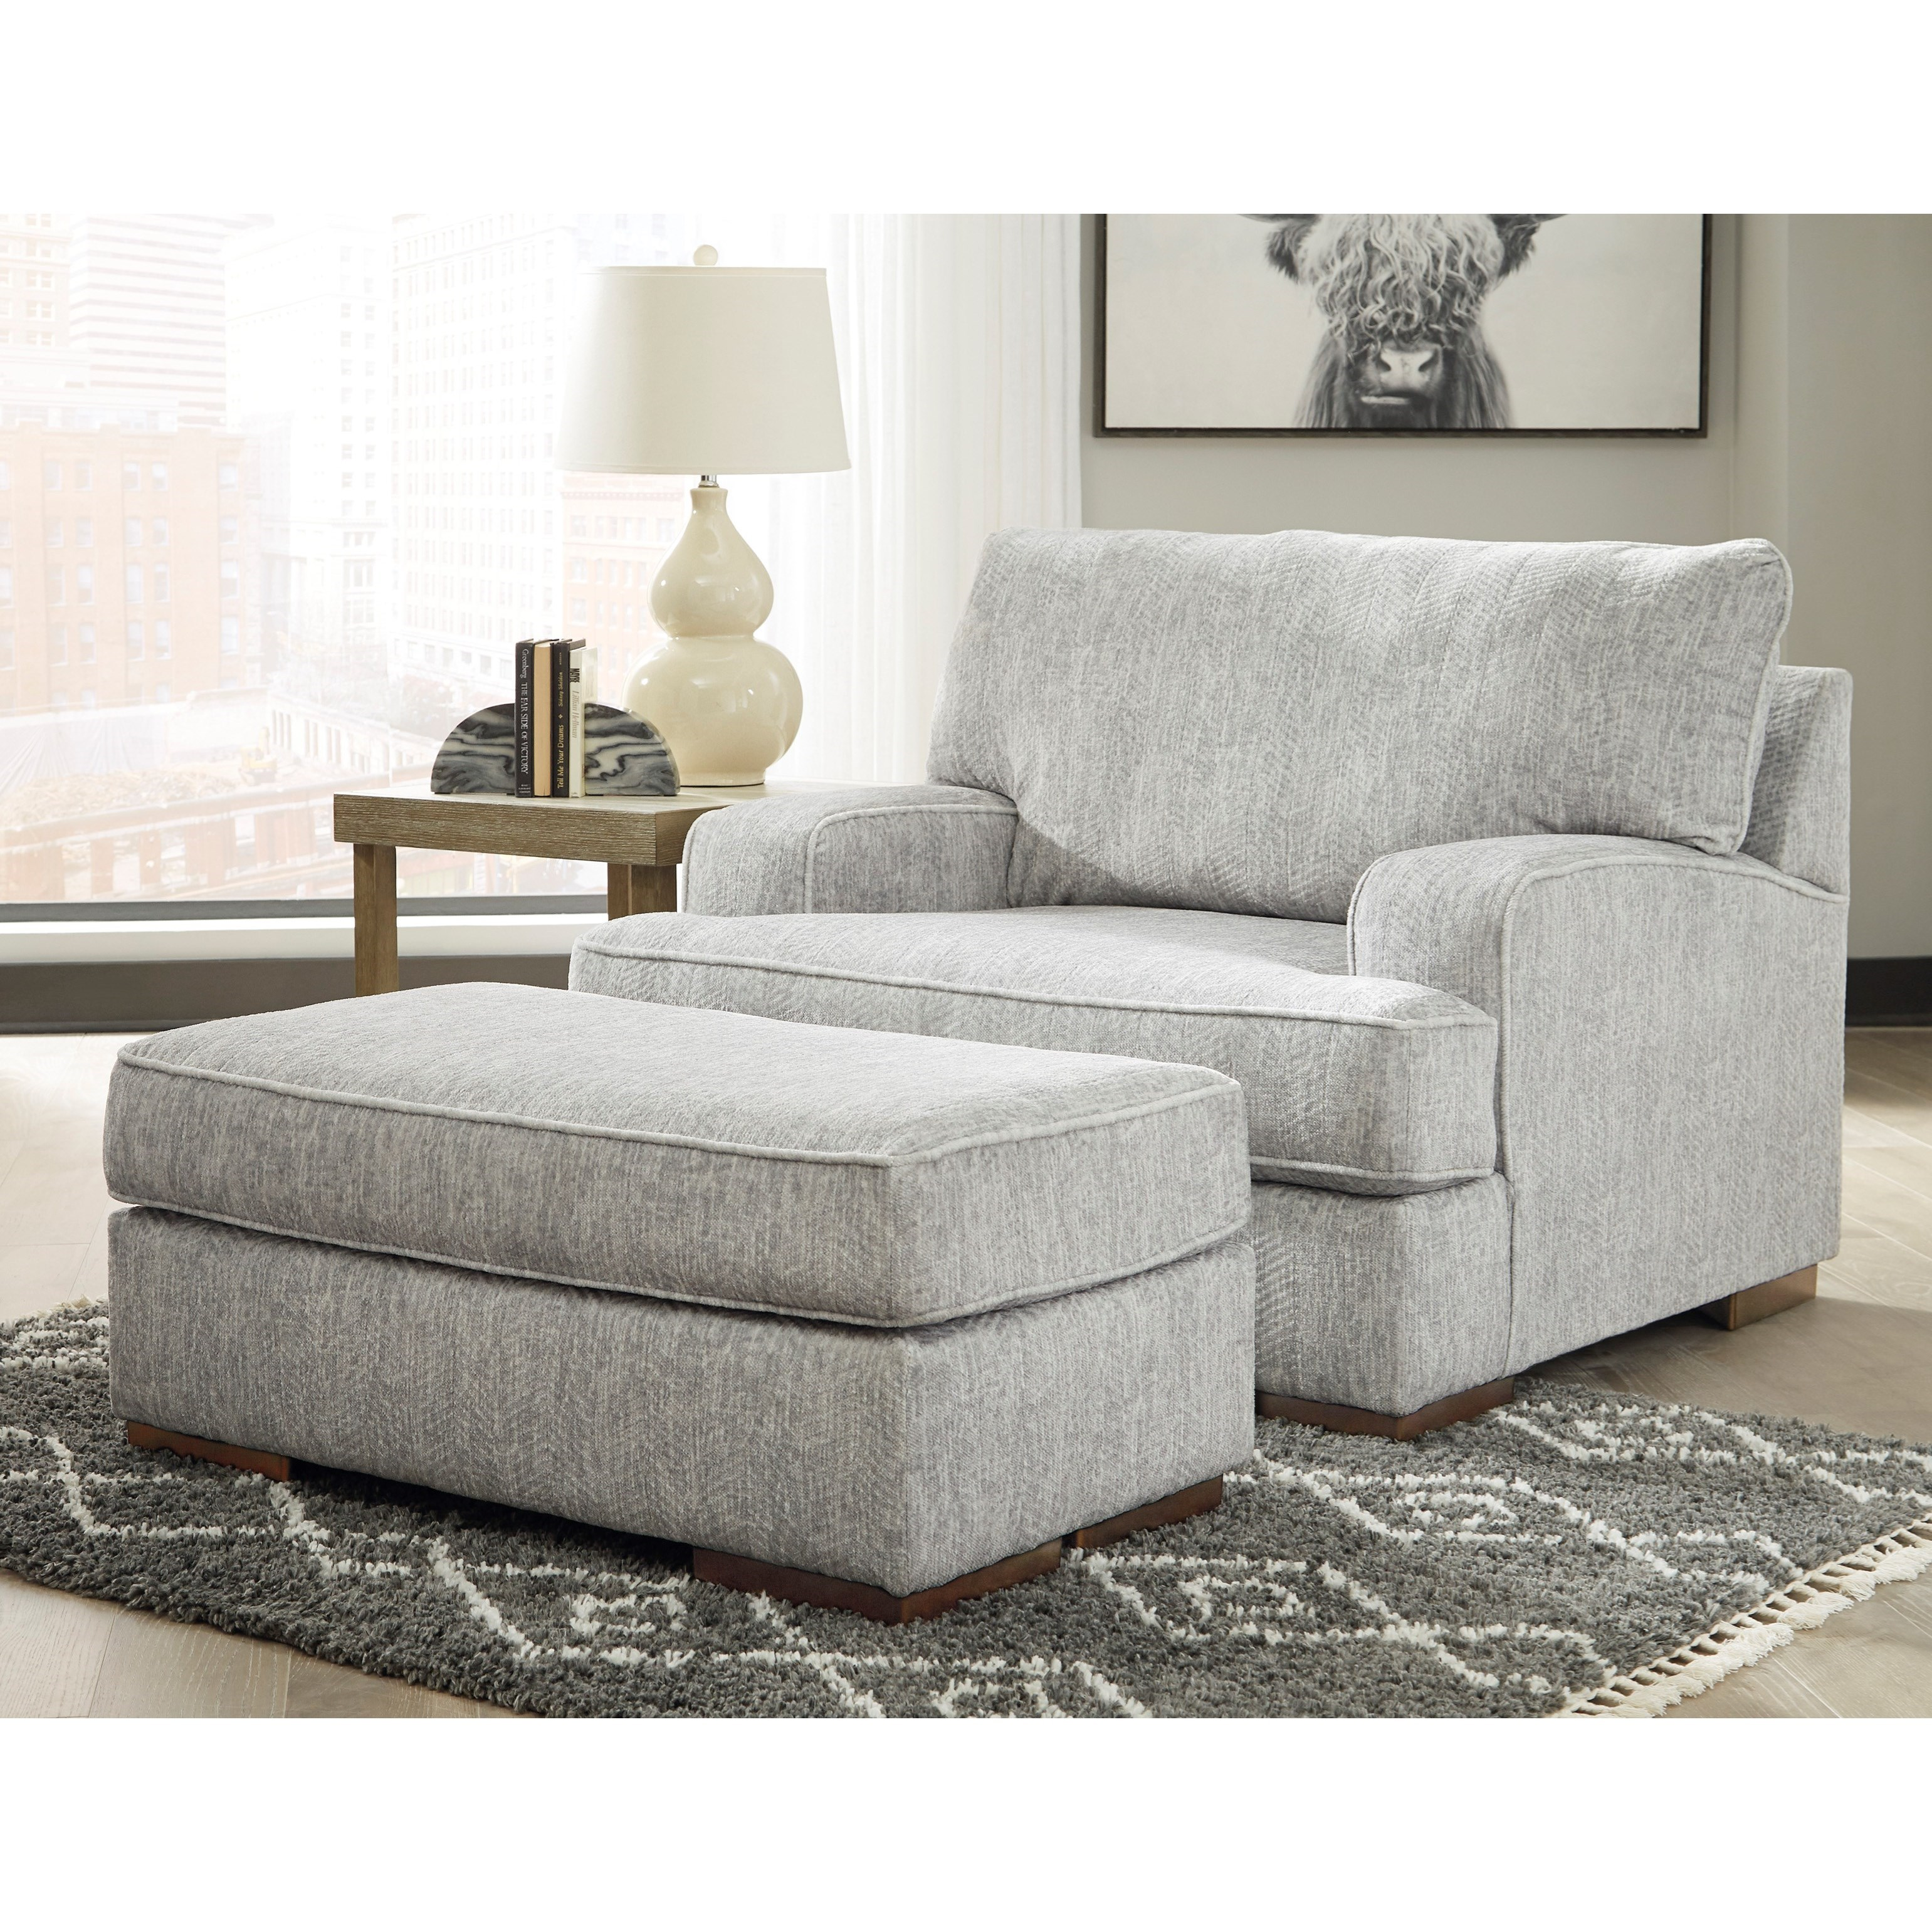 Mercado Chair and Ottoman Set by Benchcraft at Walker's Furniture